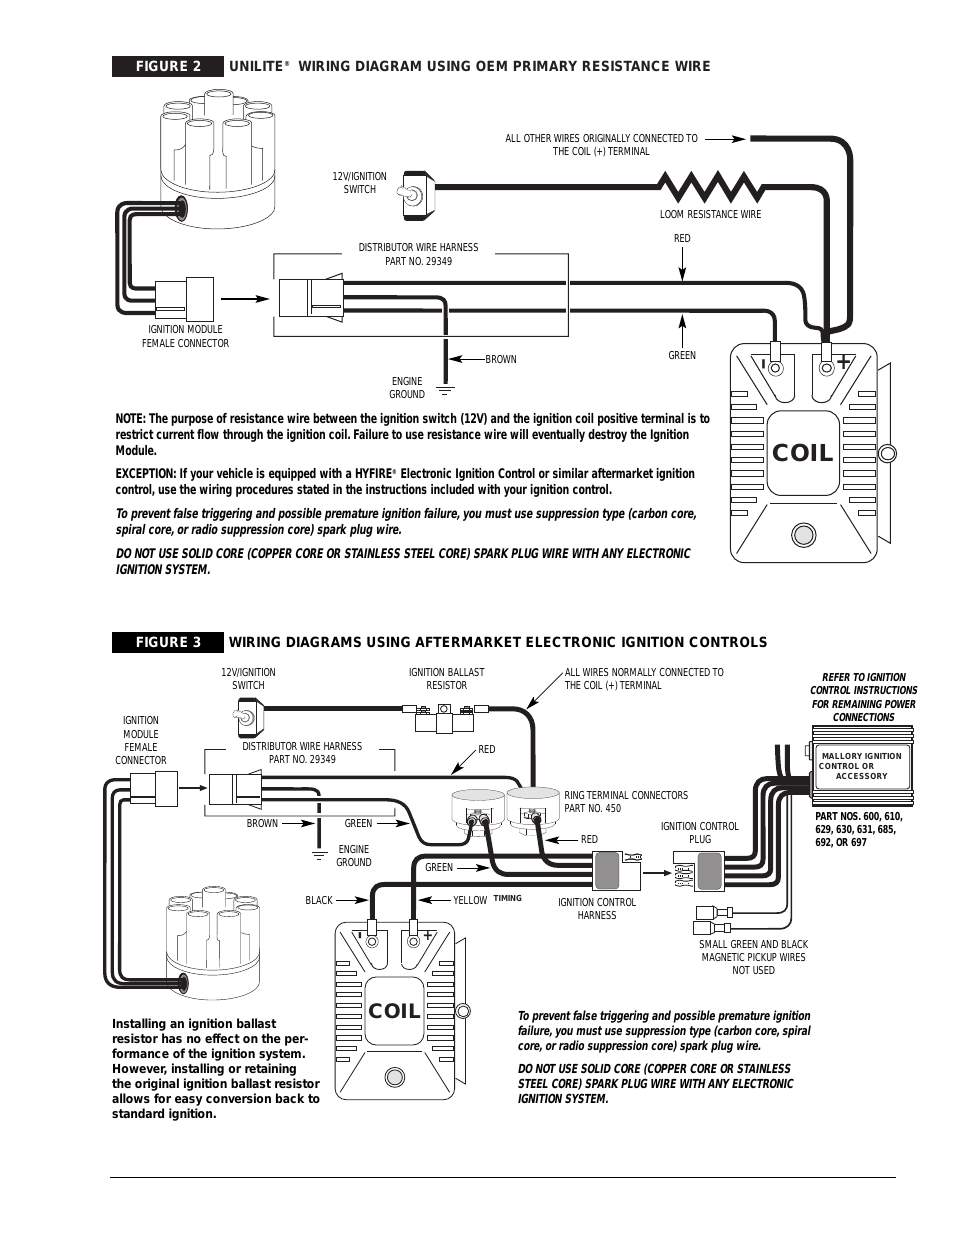 mallory ignition wiring diagram Download-Coil Mallory Ignition UNILITE DISTRIBUTOR User Manual Best Wiring Diagram 8-l